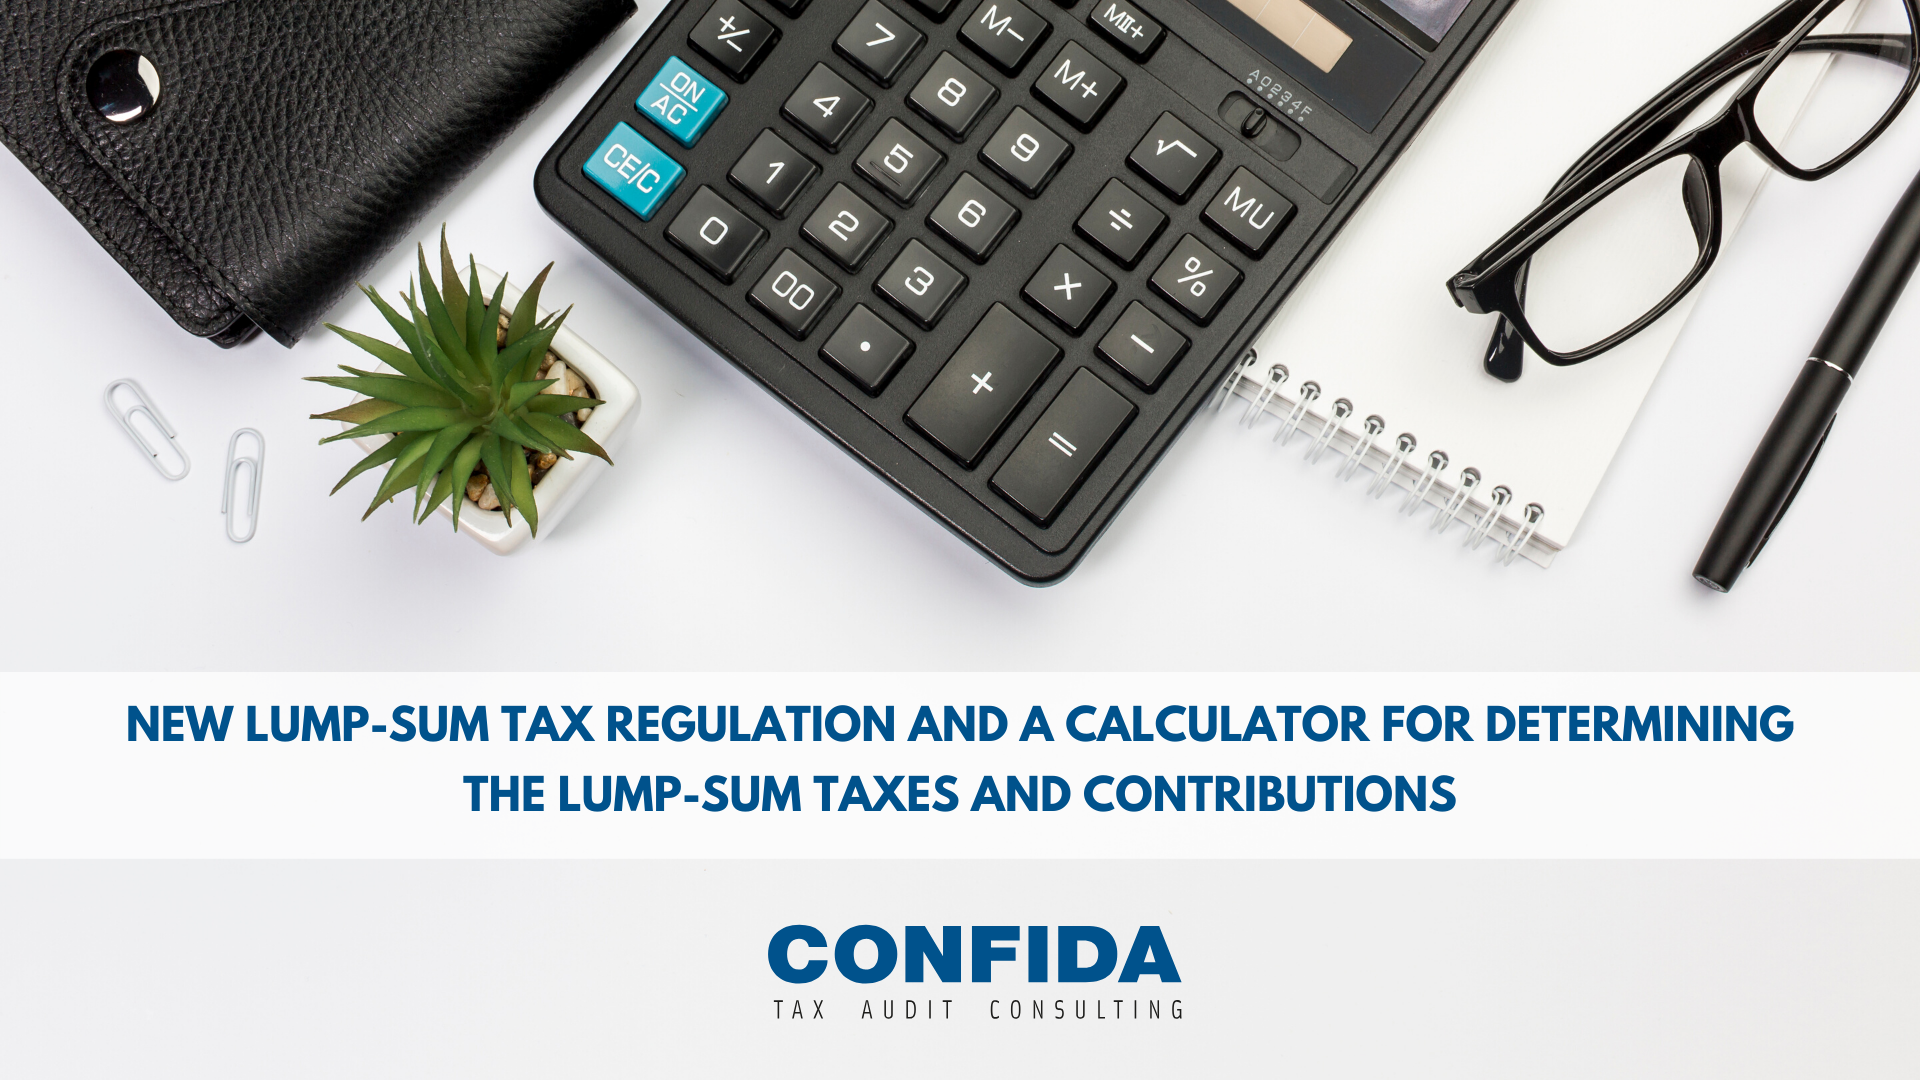 New lump-sum tax regulation and a calculator for determining the lump-sum taxes and contributions